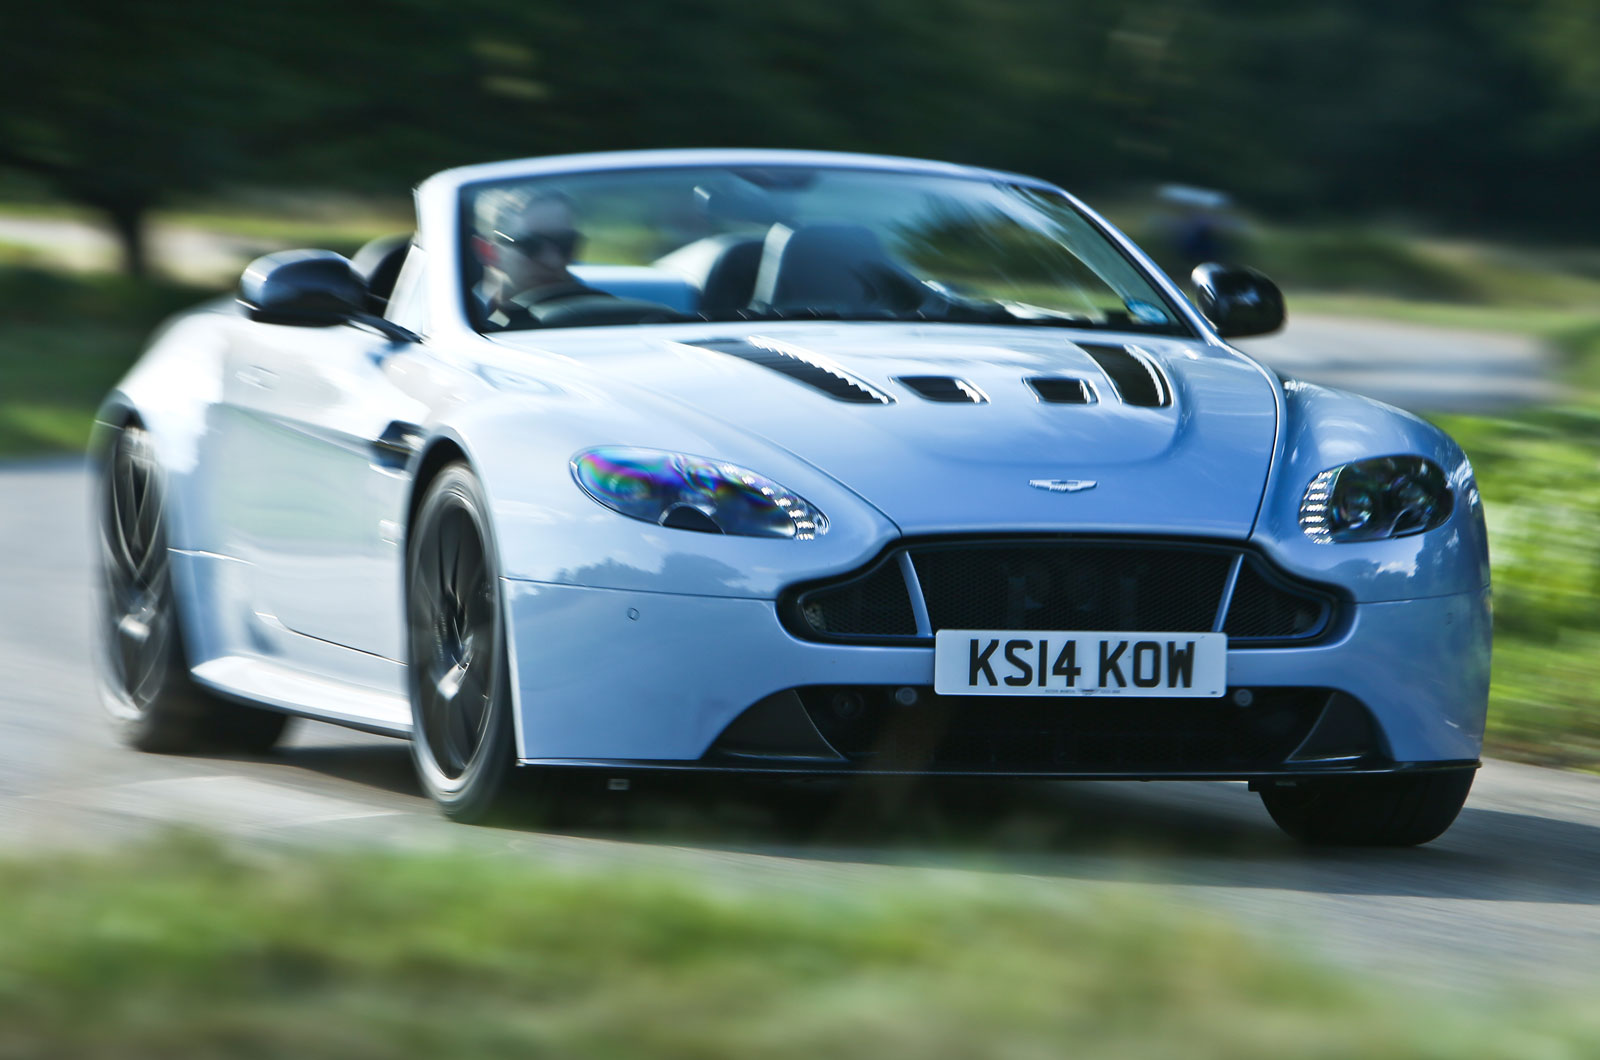 Aston Martin V12 Vantage S Roadster Uk First Drive